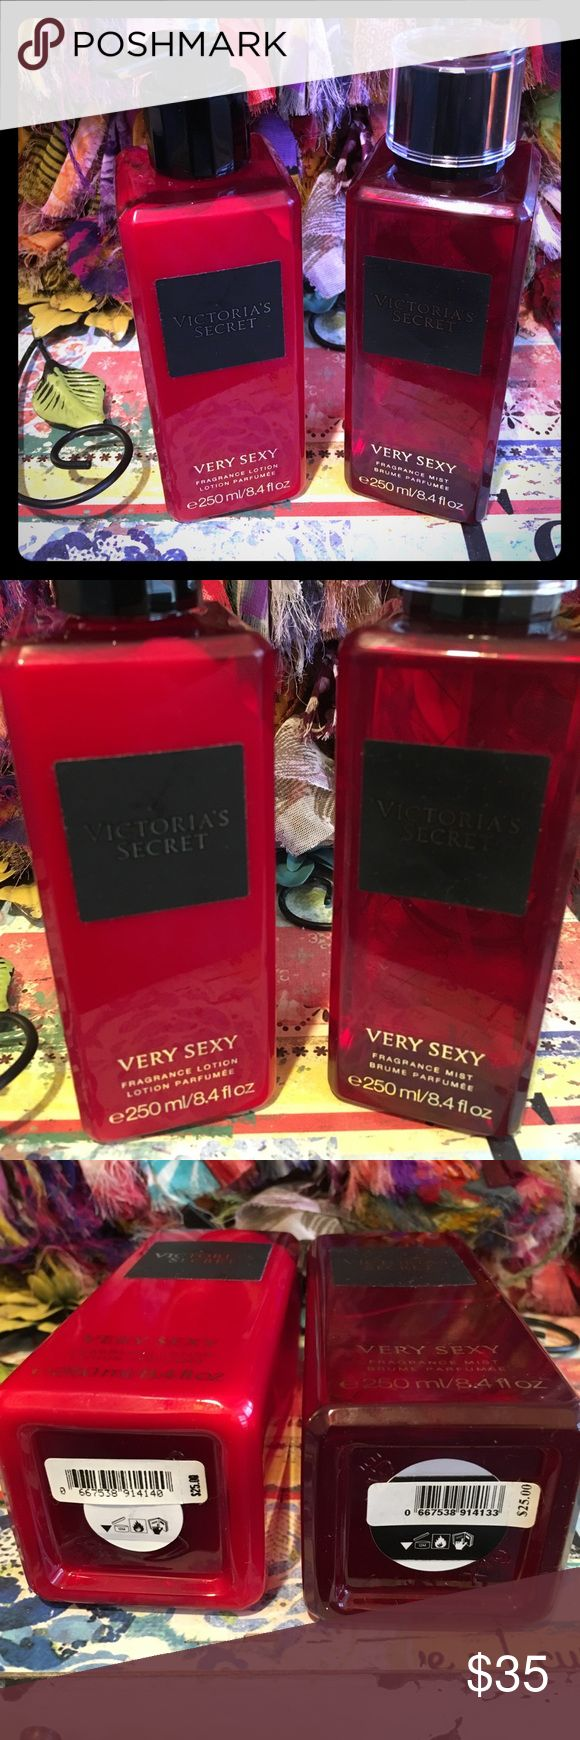 Victoria's Secret very sexy mist & lotion Victoria's Secret Body Mist & matching lotion. Start the ultimate seduction with our sheerest mix of vanilla orchid, sun-drenched clementine and midnight blackberry.  Fragrance type: Warm Notes: Vanilla orchid, sun-drenched clementine and midnight blackberry 250 ml/8.4 fl. oz. Retail price $25 each. Used once to sample. Full as seen in photos. Like new. Victoria's Secret Other